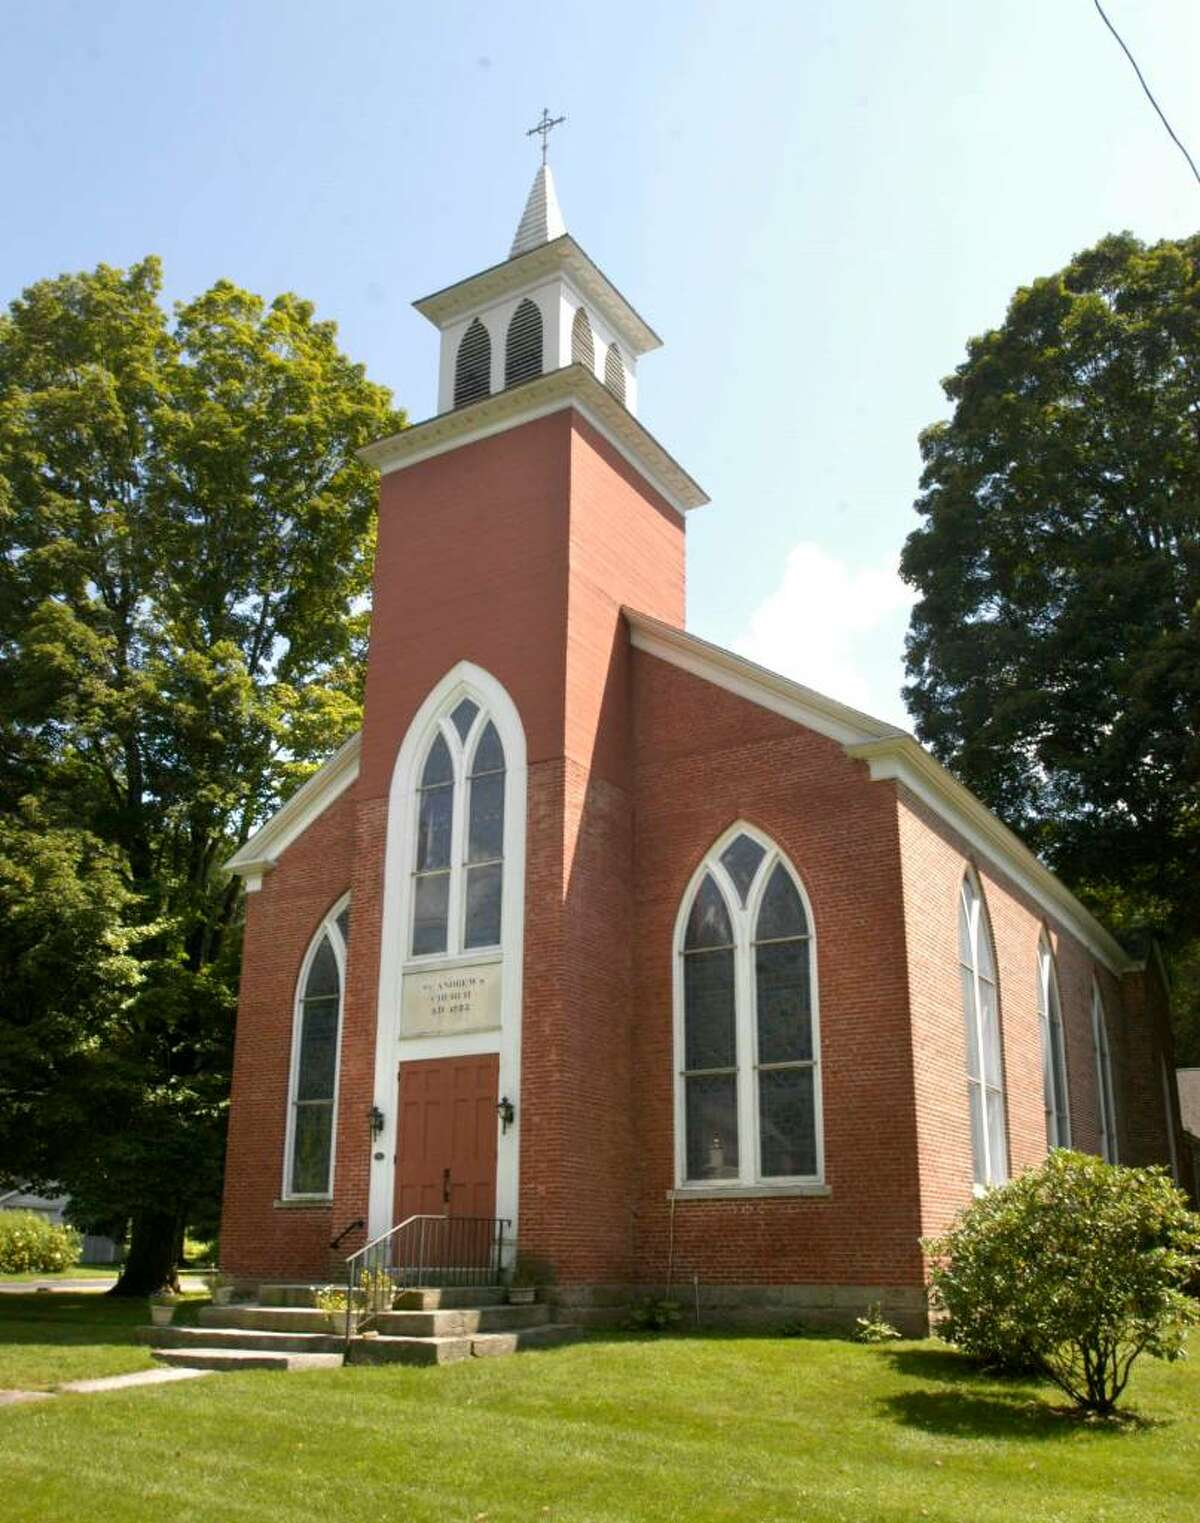 St. Andrew's Episcopal Church, 247 New Milford Turnpike (Route 202) in Marble Dale (Washington,CT) Photo taken August 25, 2009